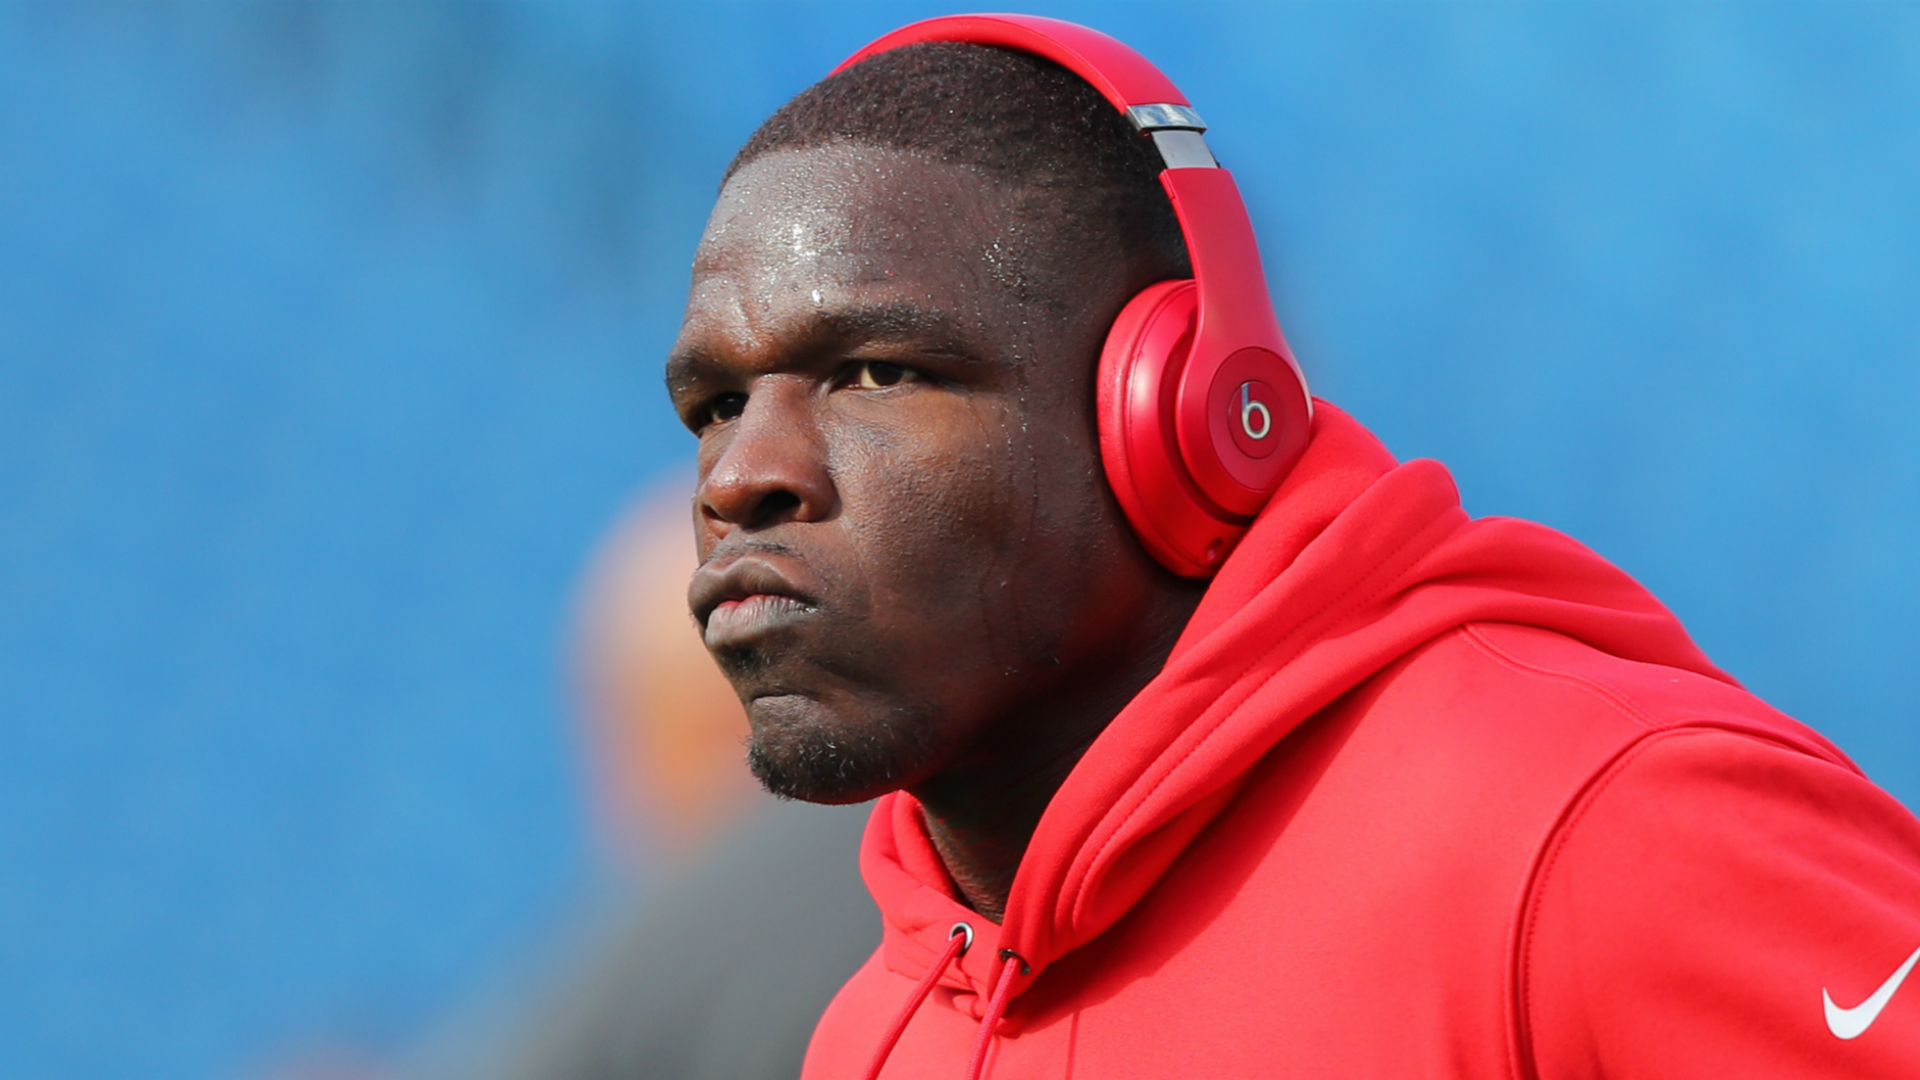 Tom Brady's exit leaves AFC East 'wide open,' says Jets' Frank Gore